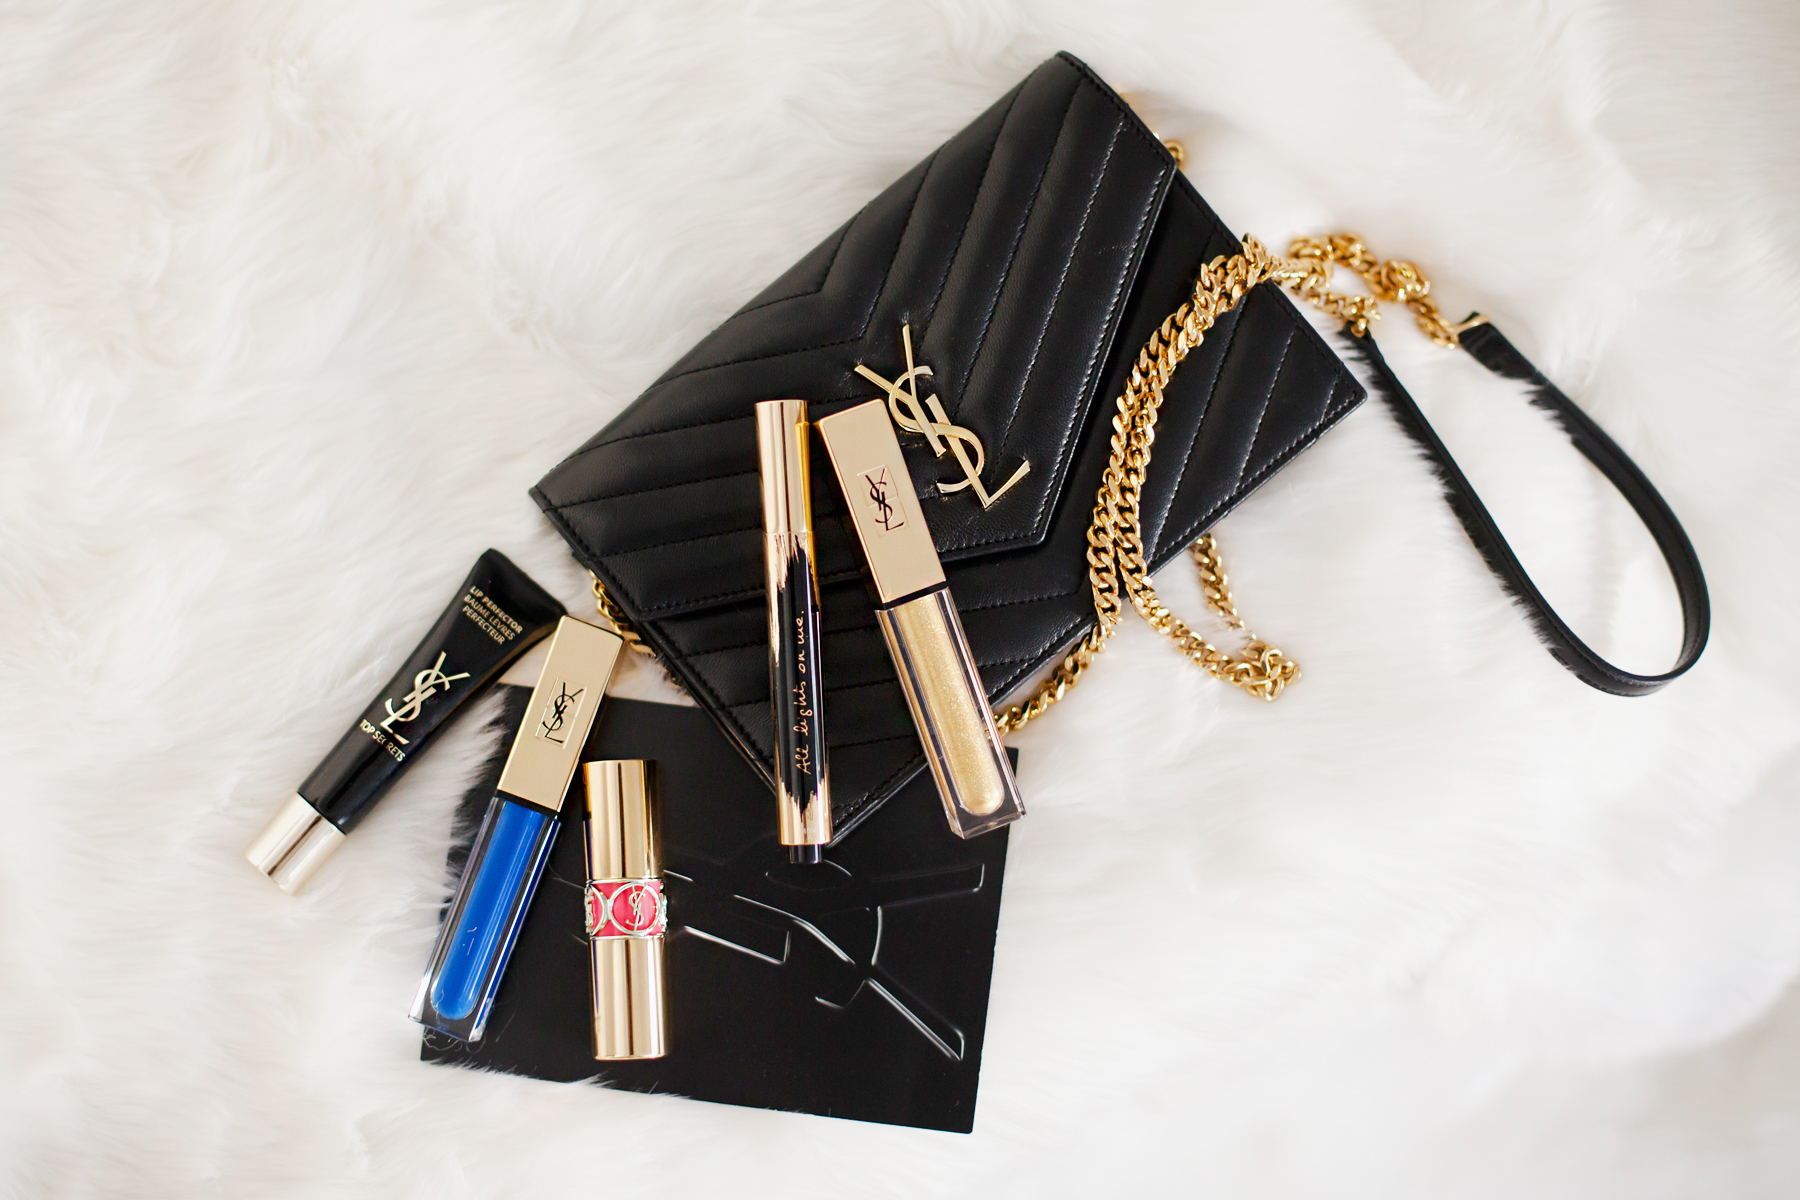 YSL Yves Saint Laurent Paris Beauty Beaute New Products Launch Lipstick Mascara Gold Eyelashes chic paris makeup beautyblogger cats & dogs blog ricarda schernus berlin dusseldorf blogger 3